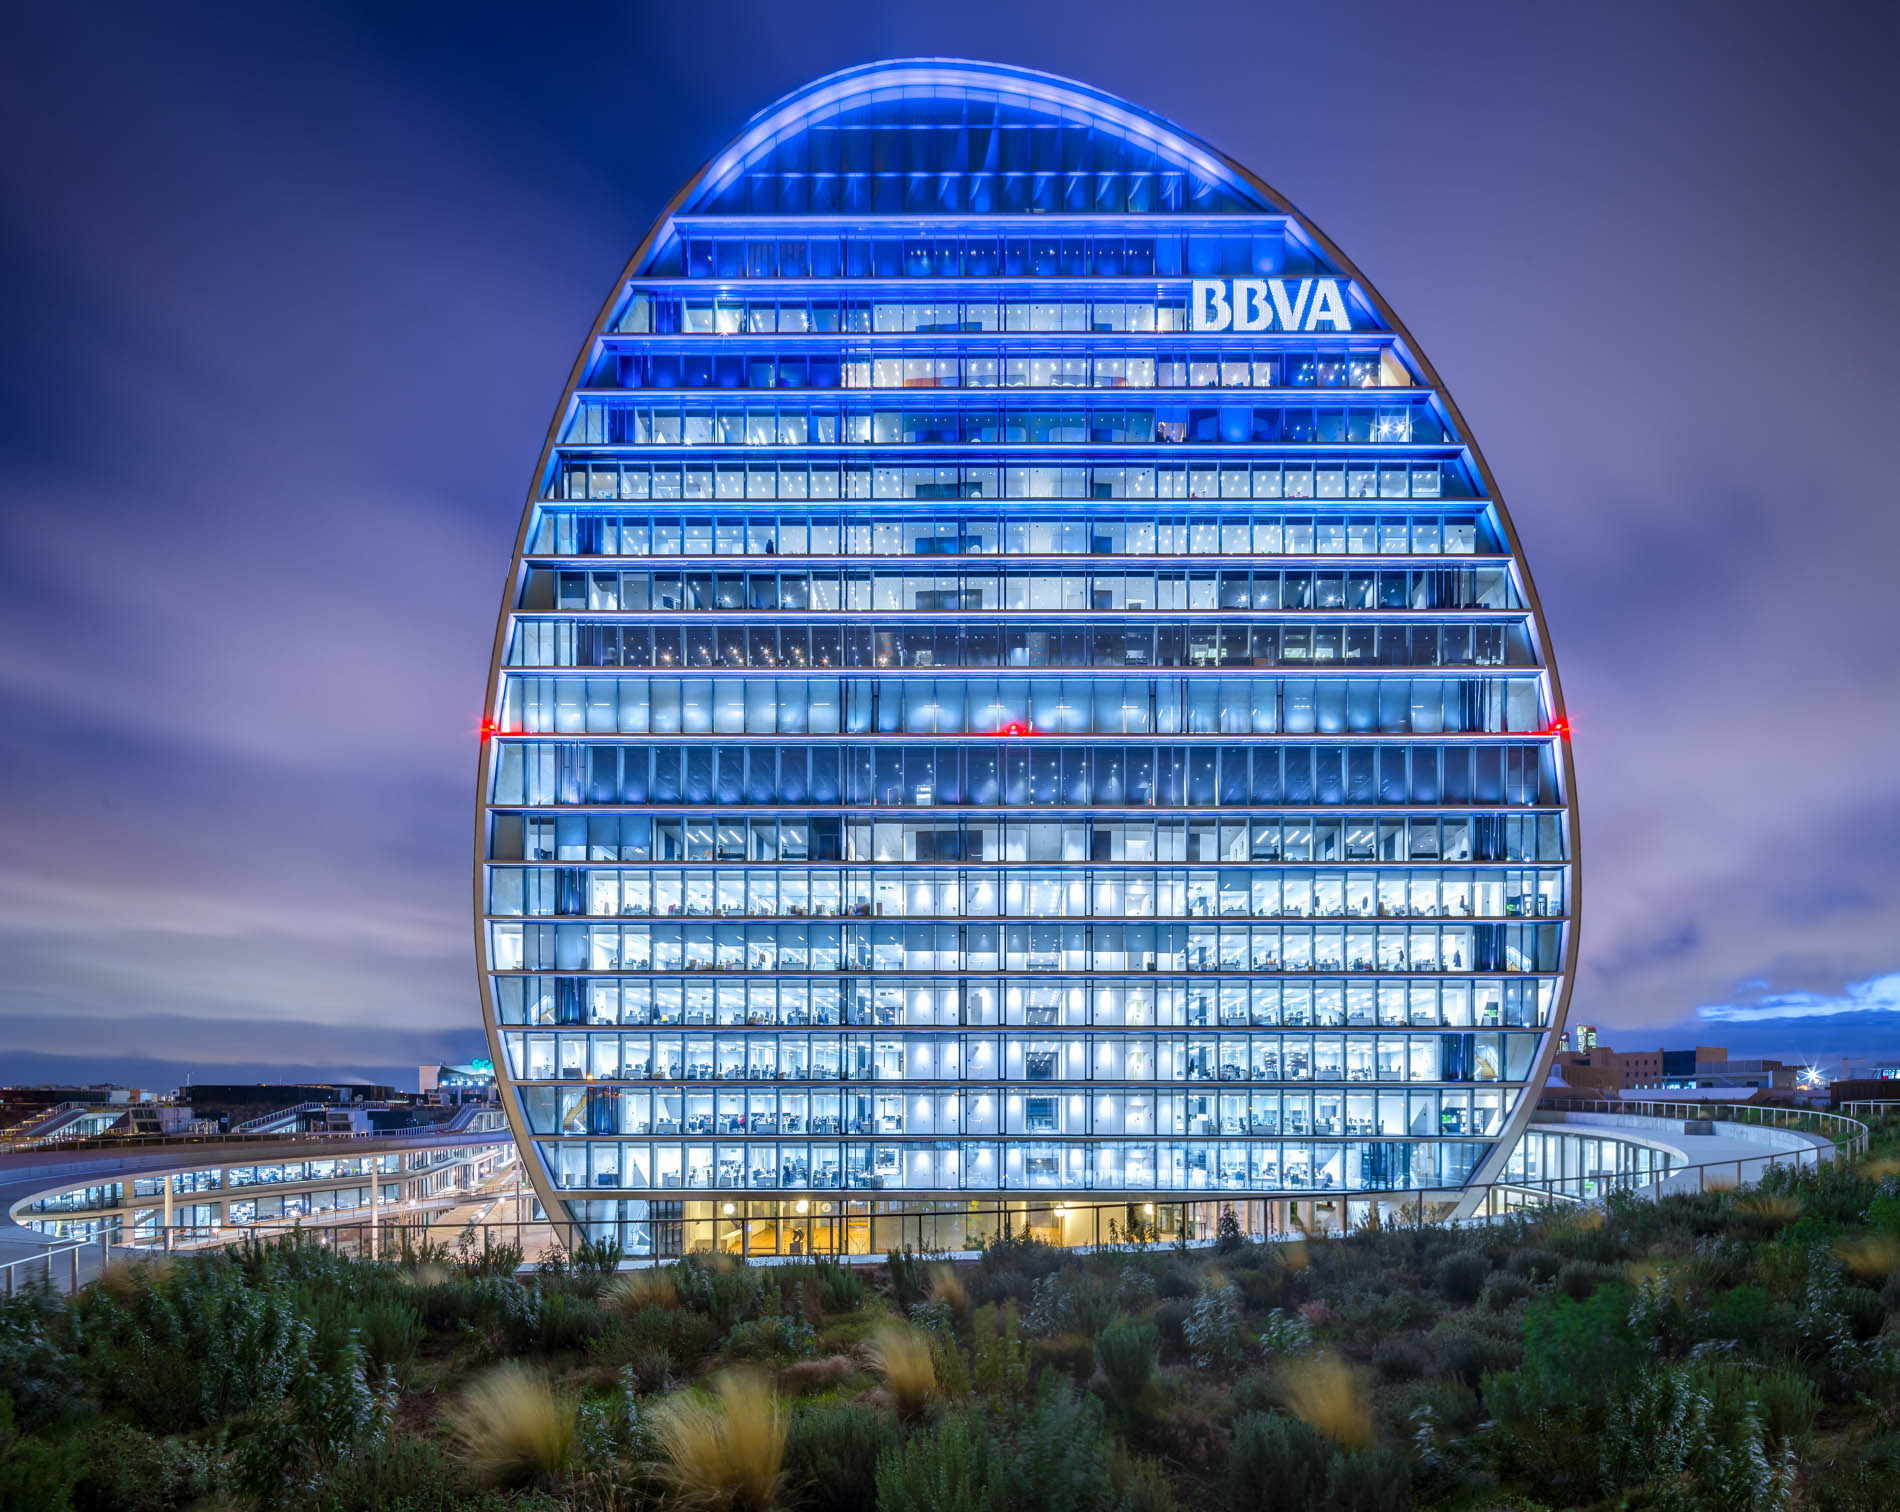 https://shareholdersandinvestors.bbva.com/wp-content/uploads/2017/05/BBVA-HEADQUARTERS-MADRID-149-1.jpg